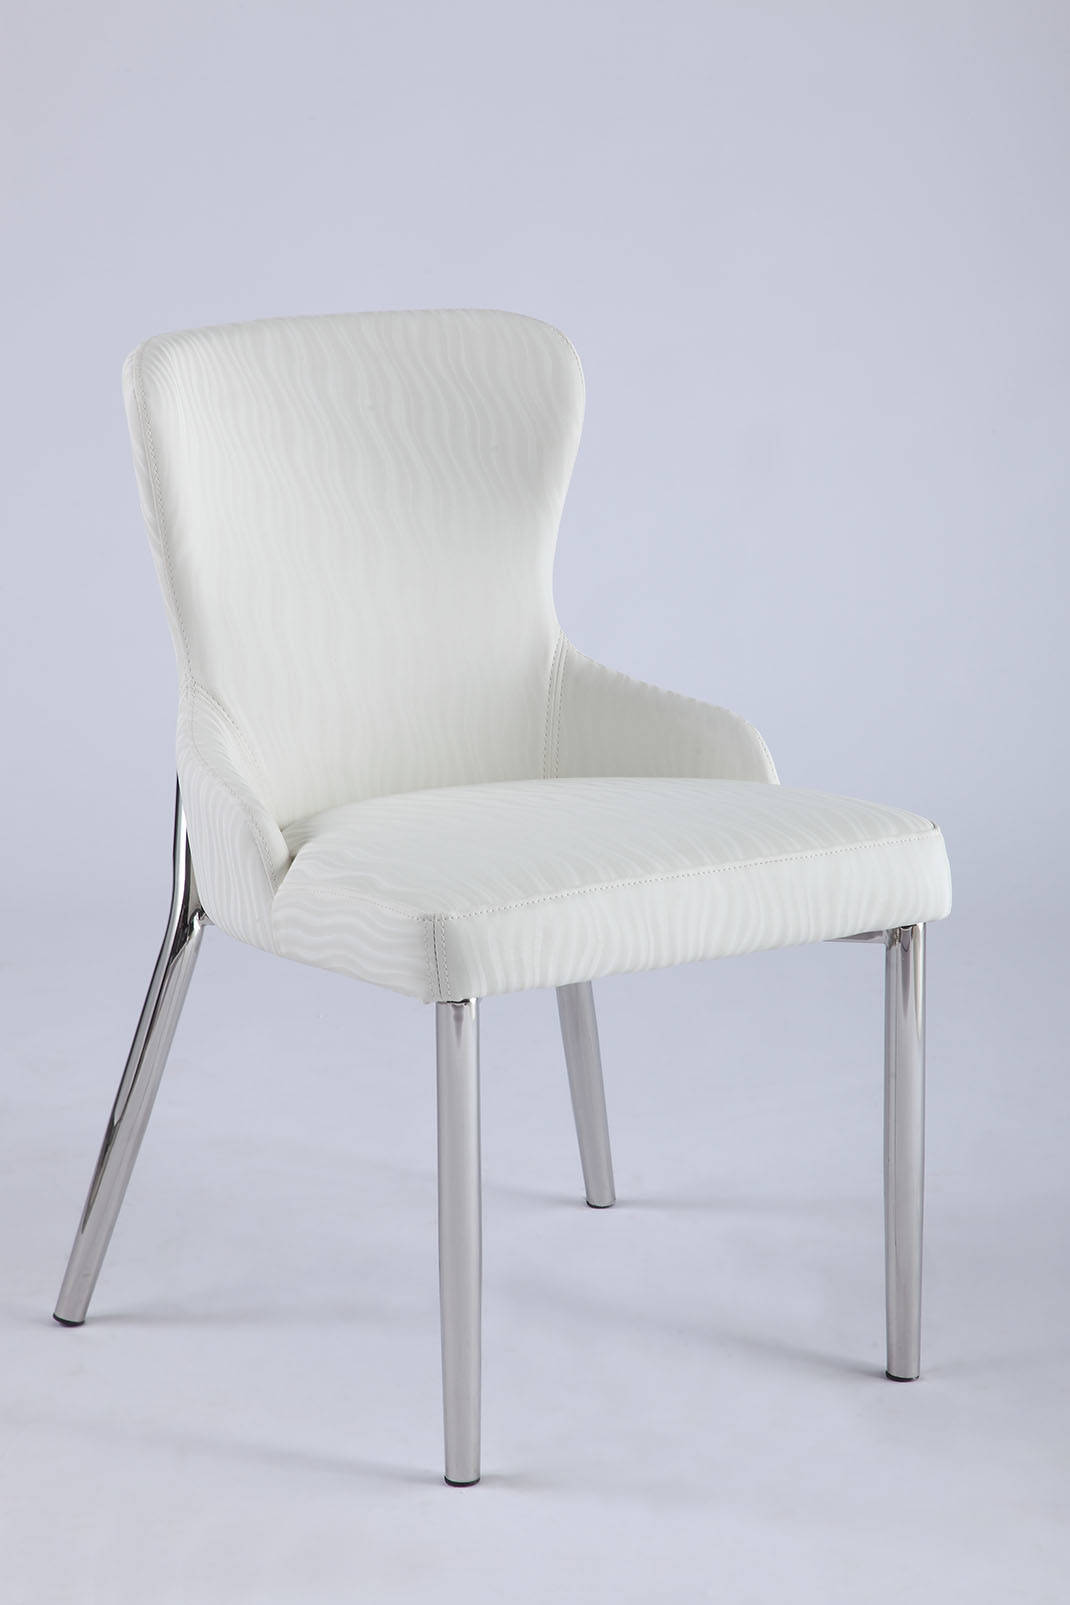 2 Chintaly Imports Evelyn Wing Back Side Polished Chairs